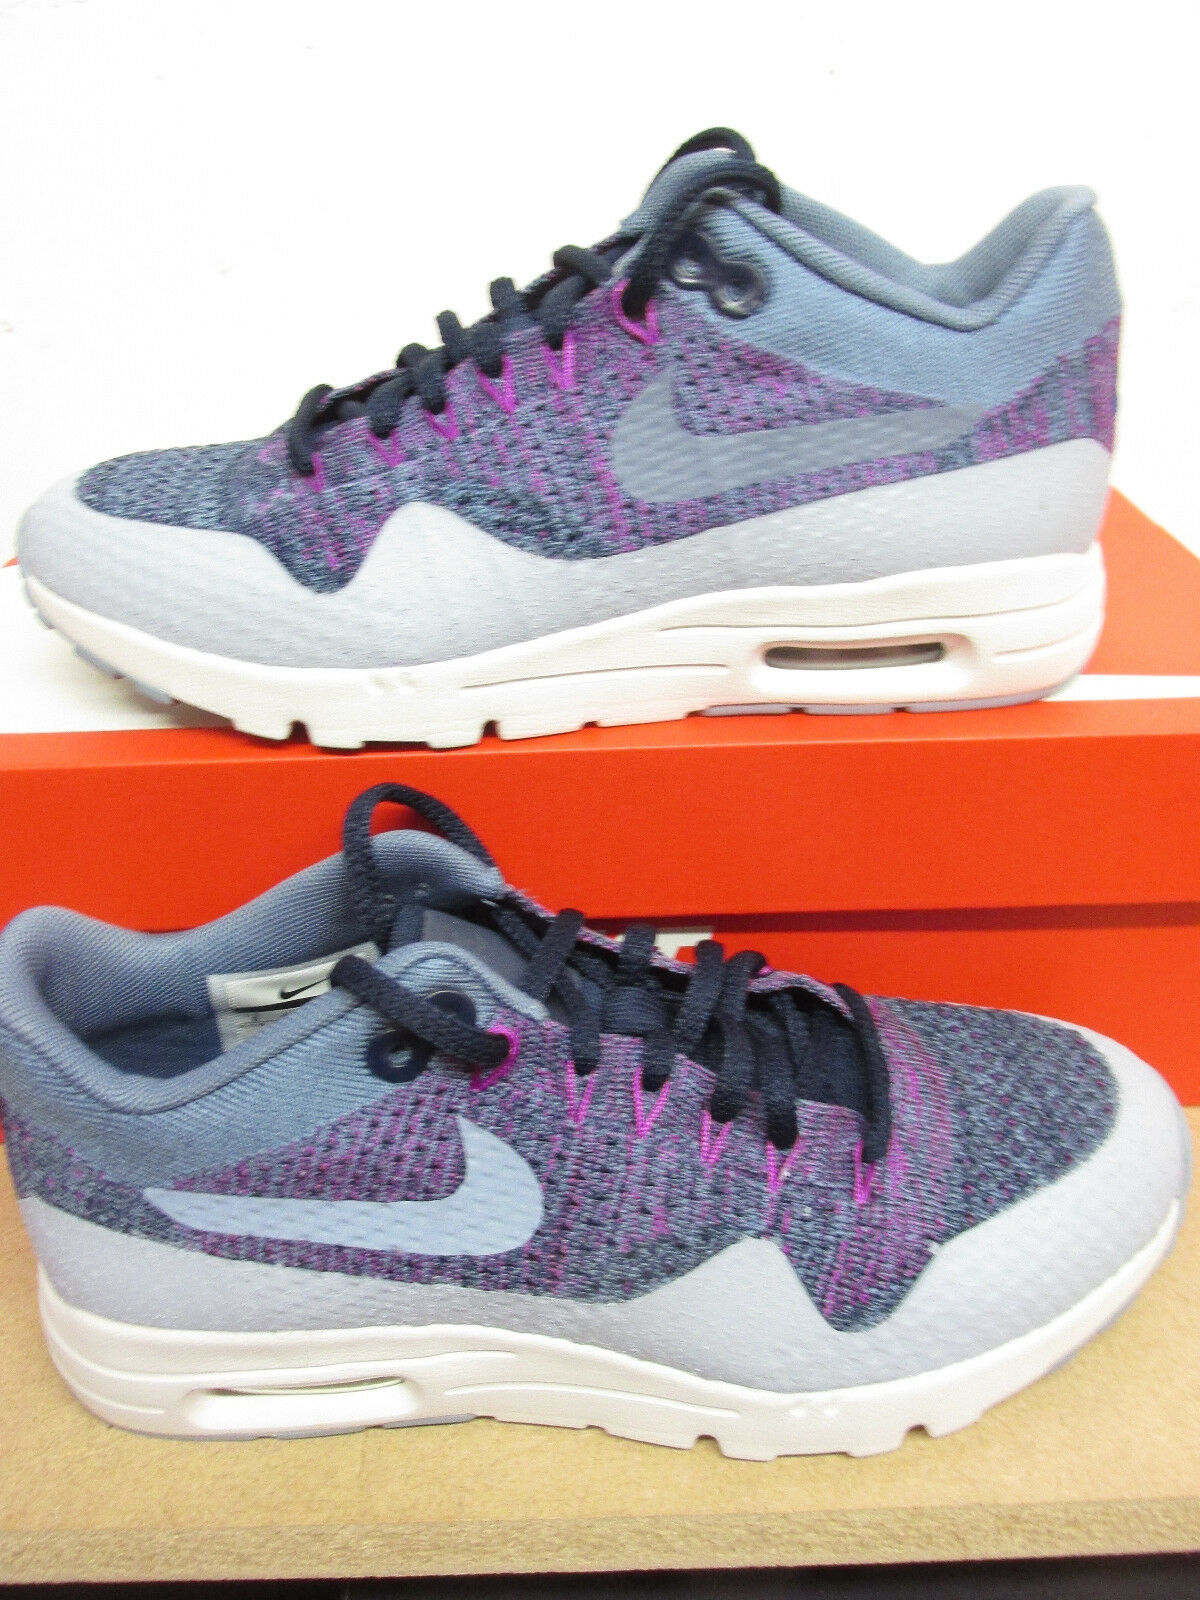 Nike Femmes Air Max 1 Ultra Flyknit Basket Course 859517 400 Baskets